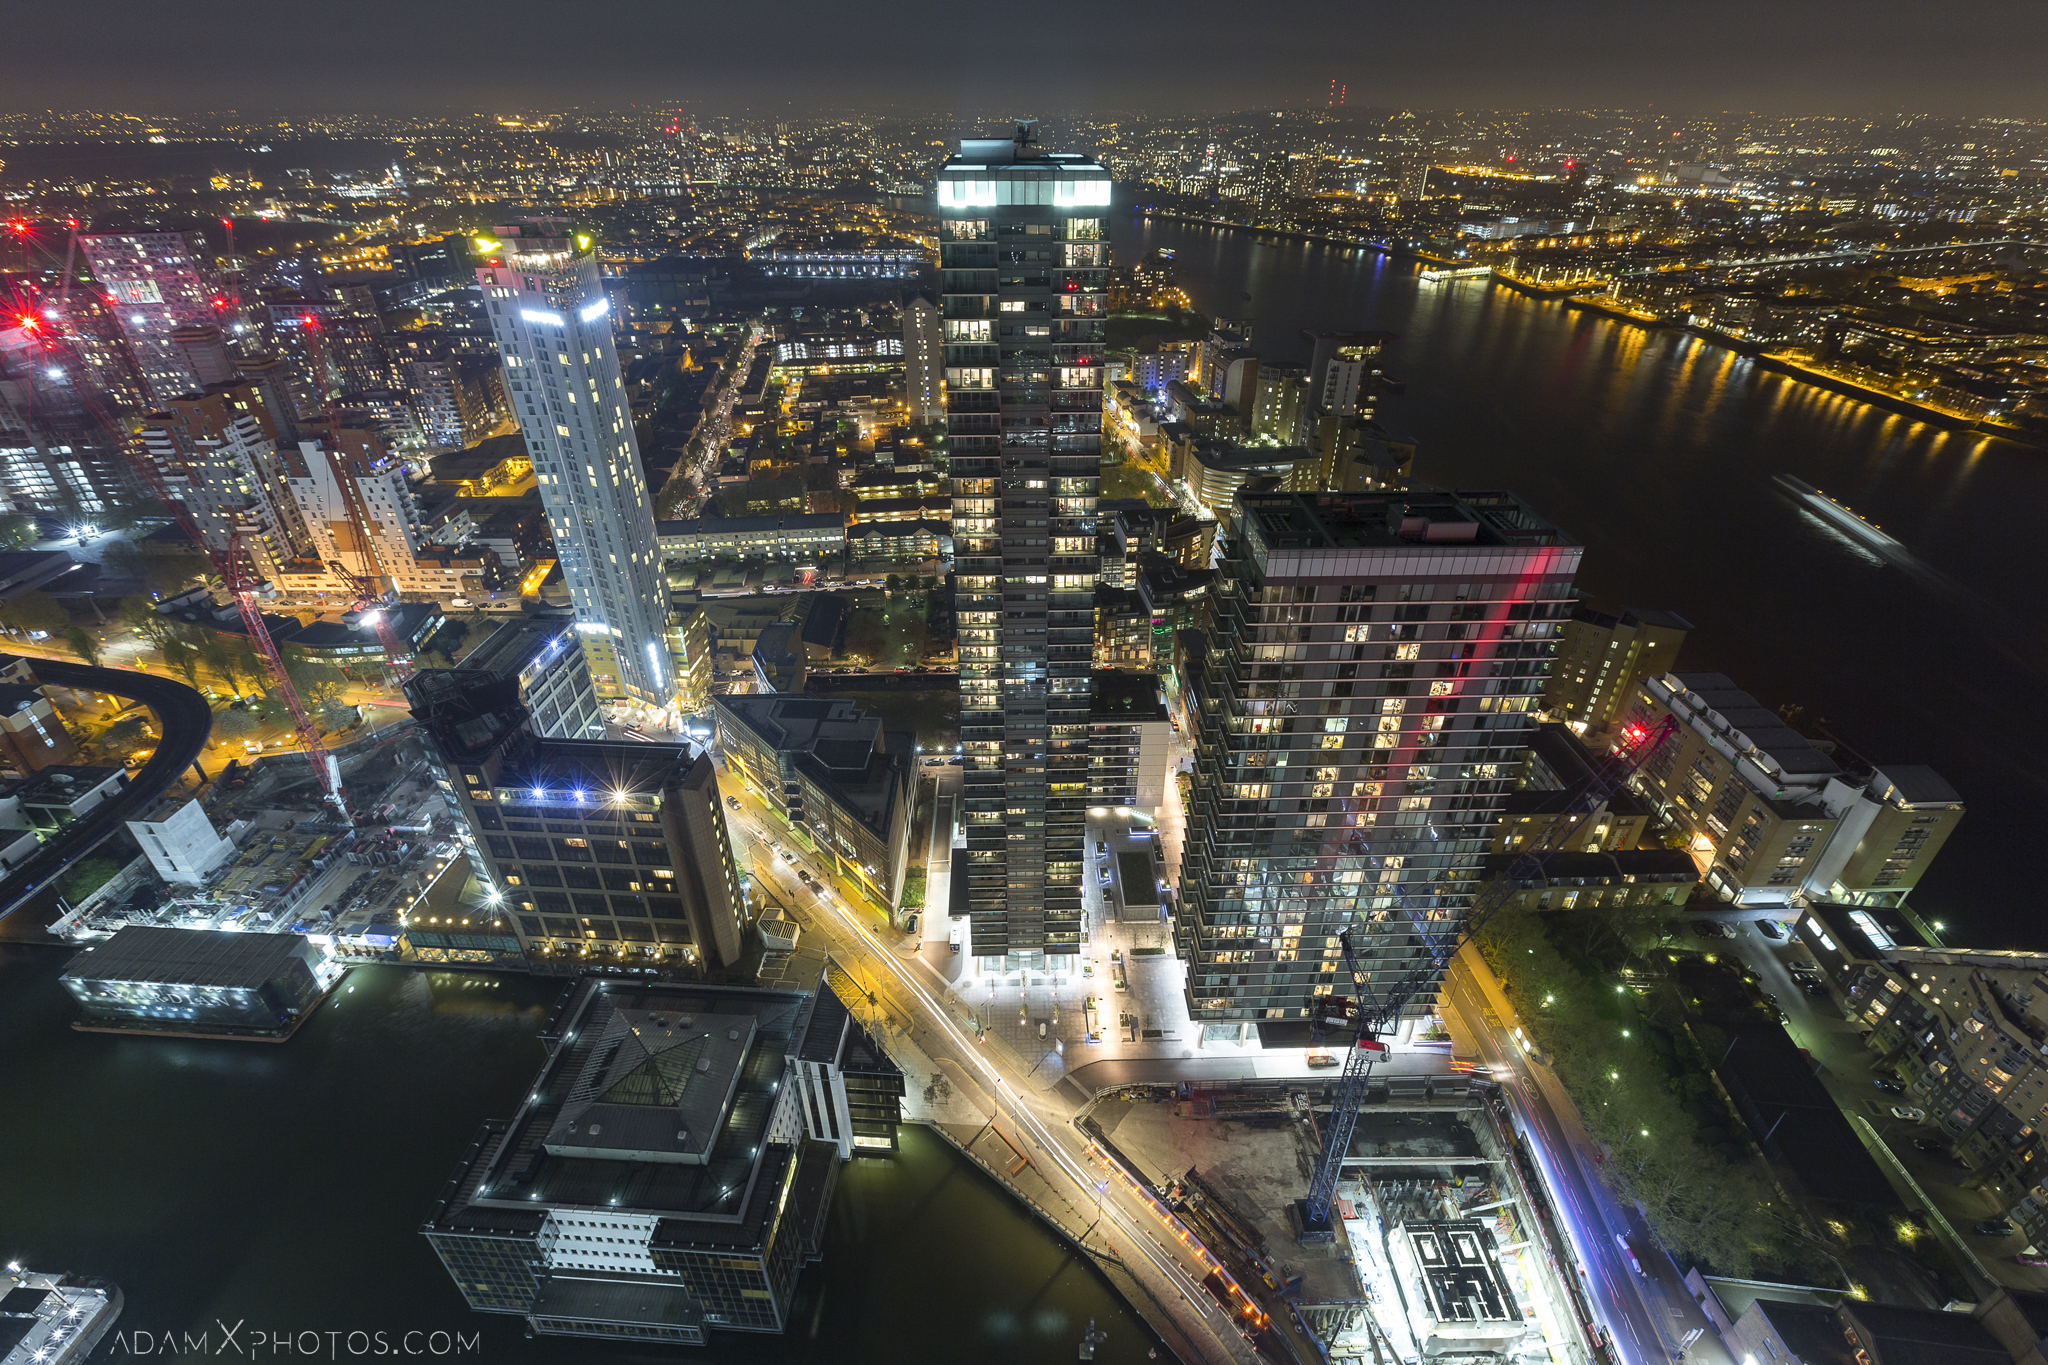 Rooftop Rooftopping London Urbex High Adam X Urban Exploration Access 2017 Abandoned decay lost forgotten derelict location dangerous night nightttime